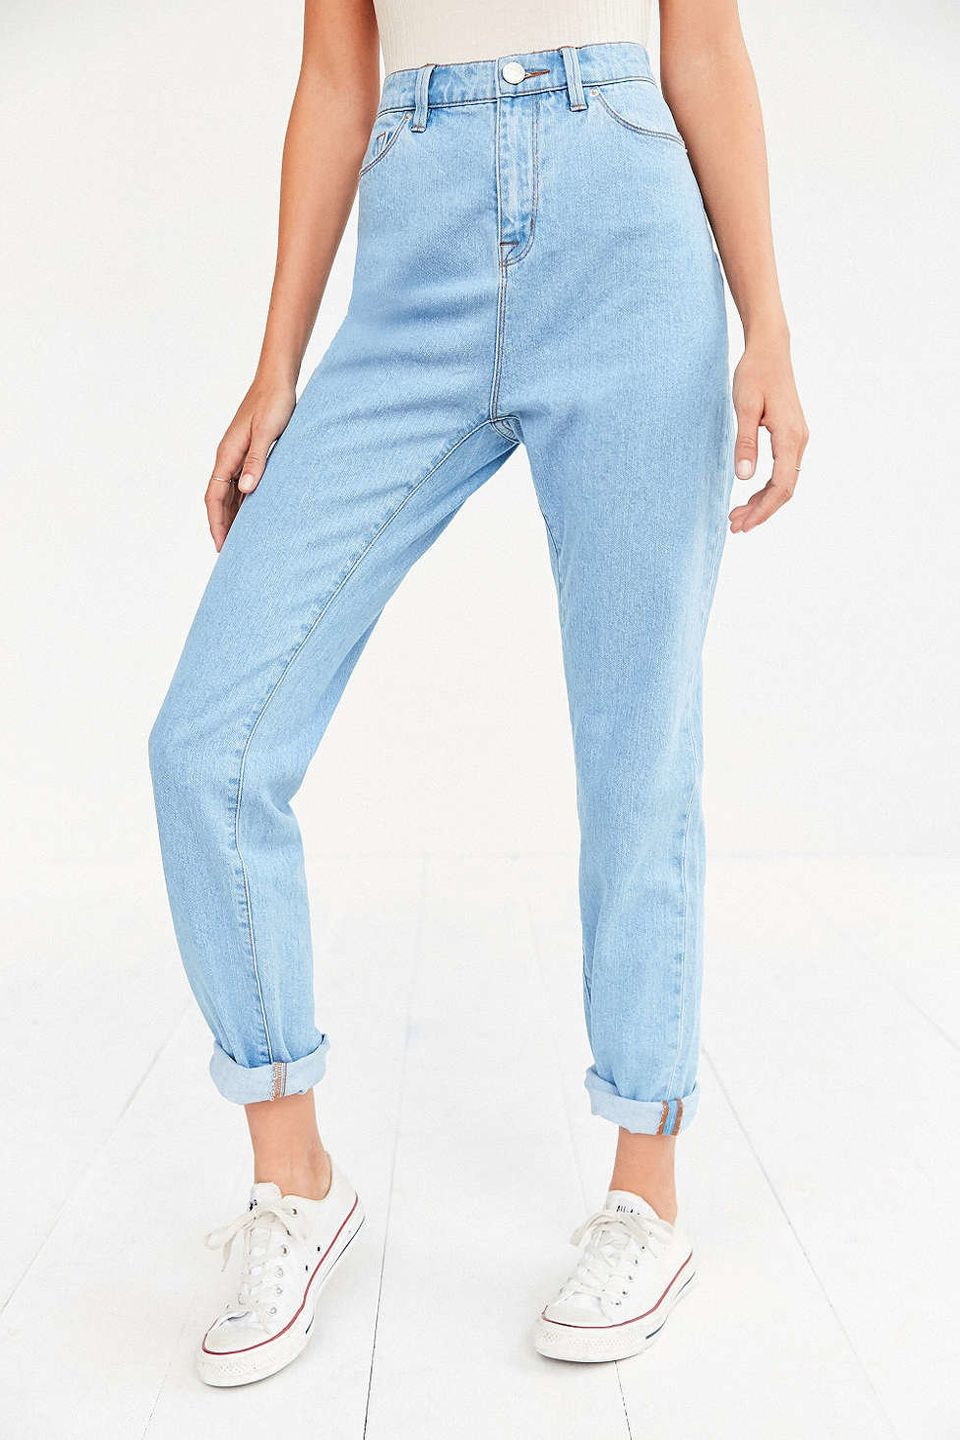 Bdg Style Idaho Project Kitchen: Topshop Wants You To Buy 'Mom Jeans' With Clear Plastic Kneecaps